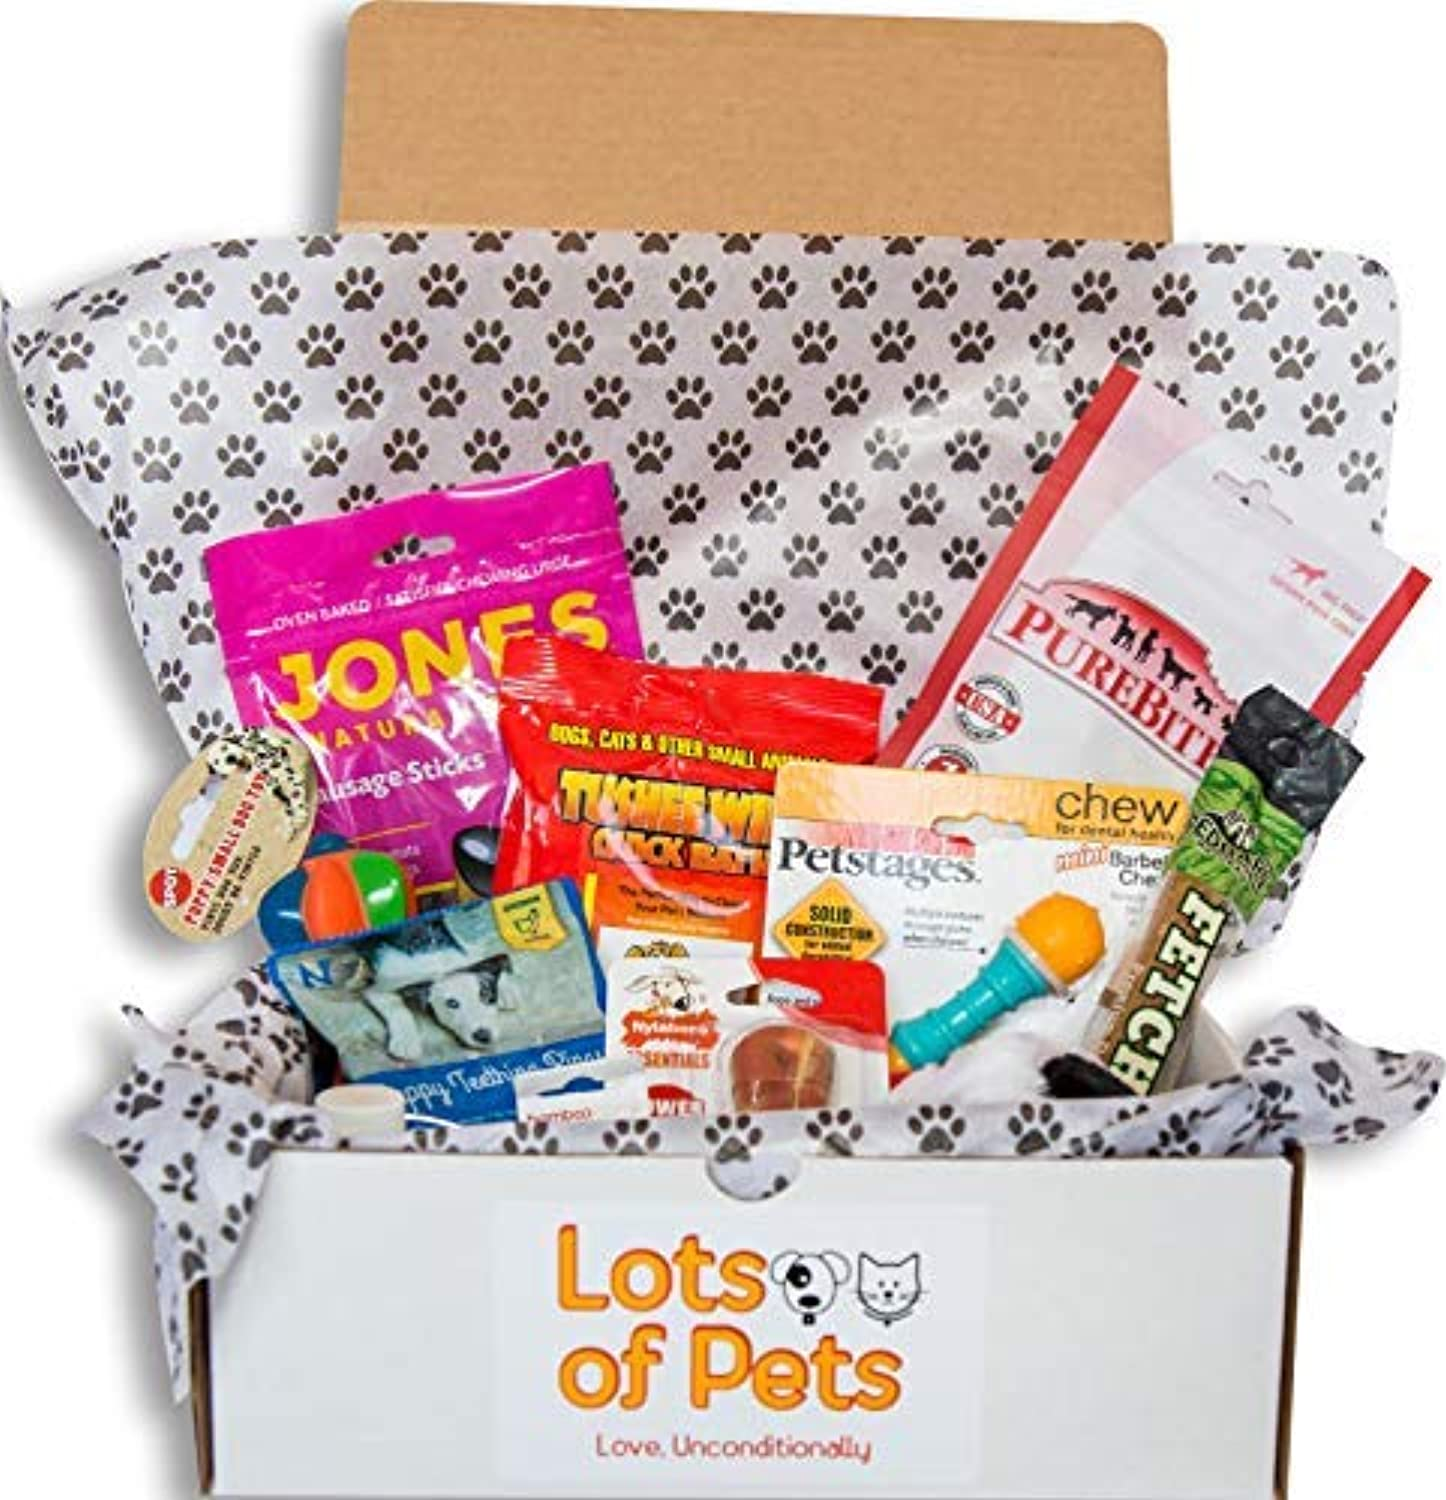 Lots of Pets Teeny Meenie Dog Party Box for Dogs Up to 20 lbs. (Small [Teeny Meenie])